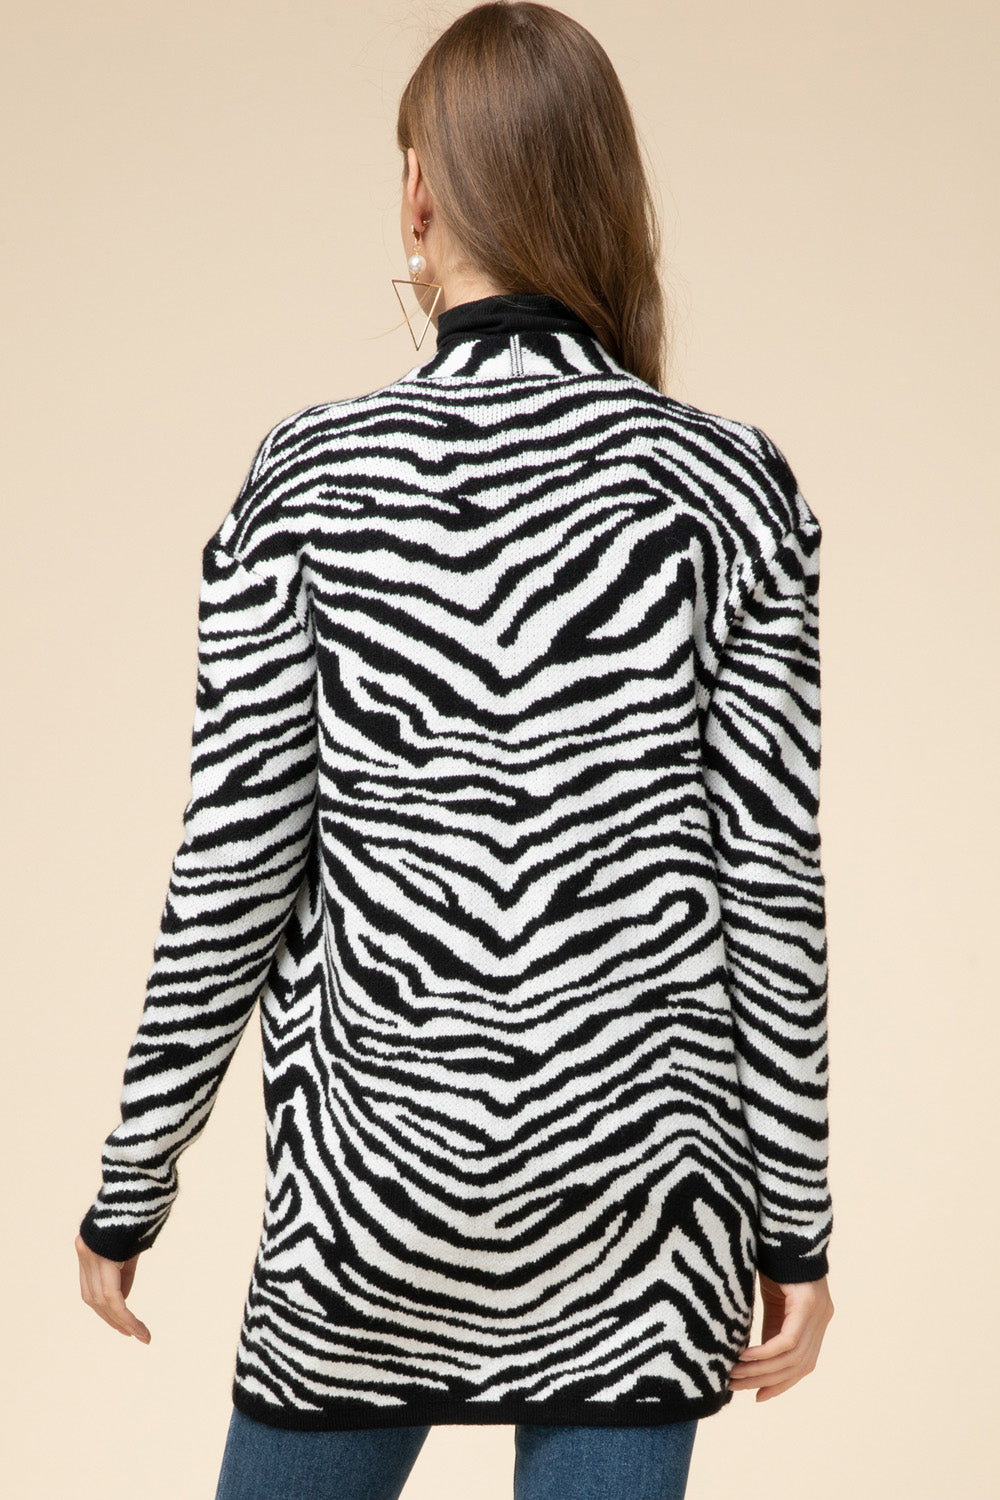 Zealous Zebra Sweater Cardigan